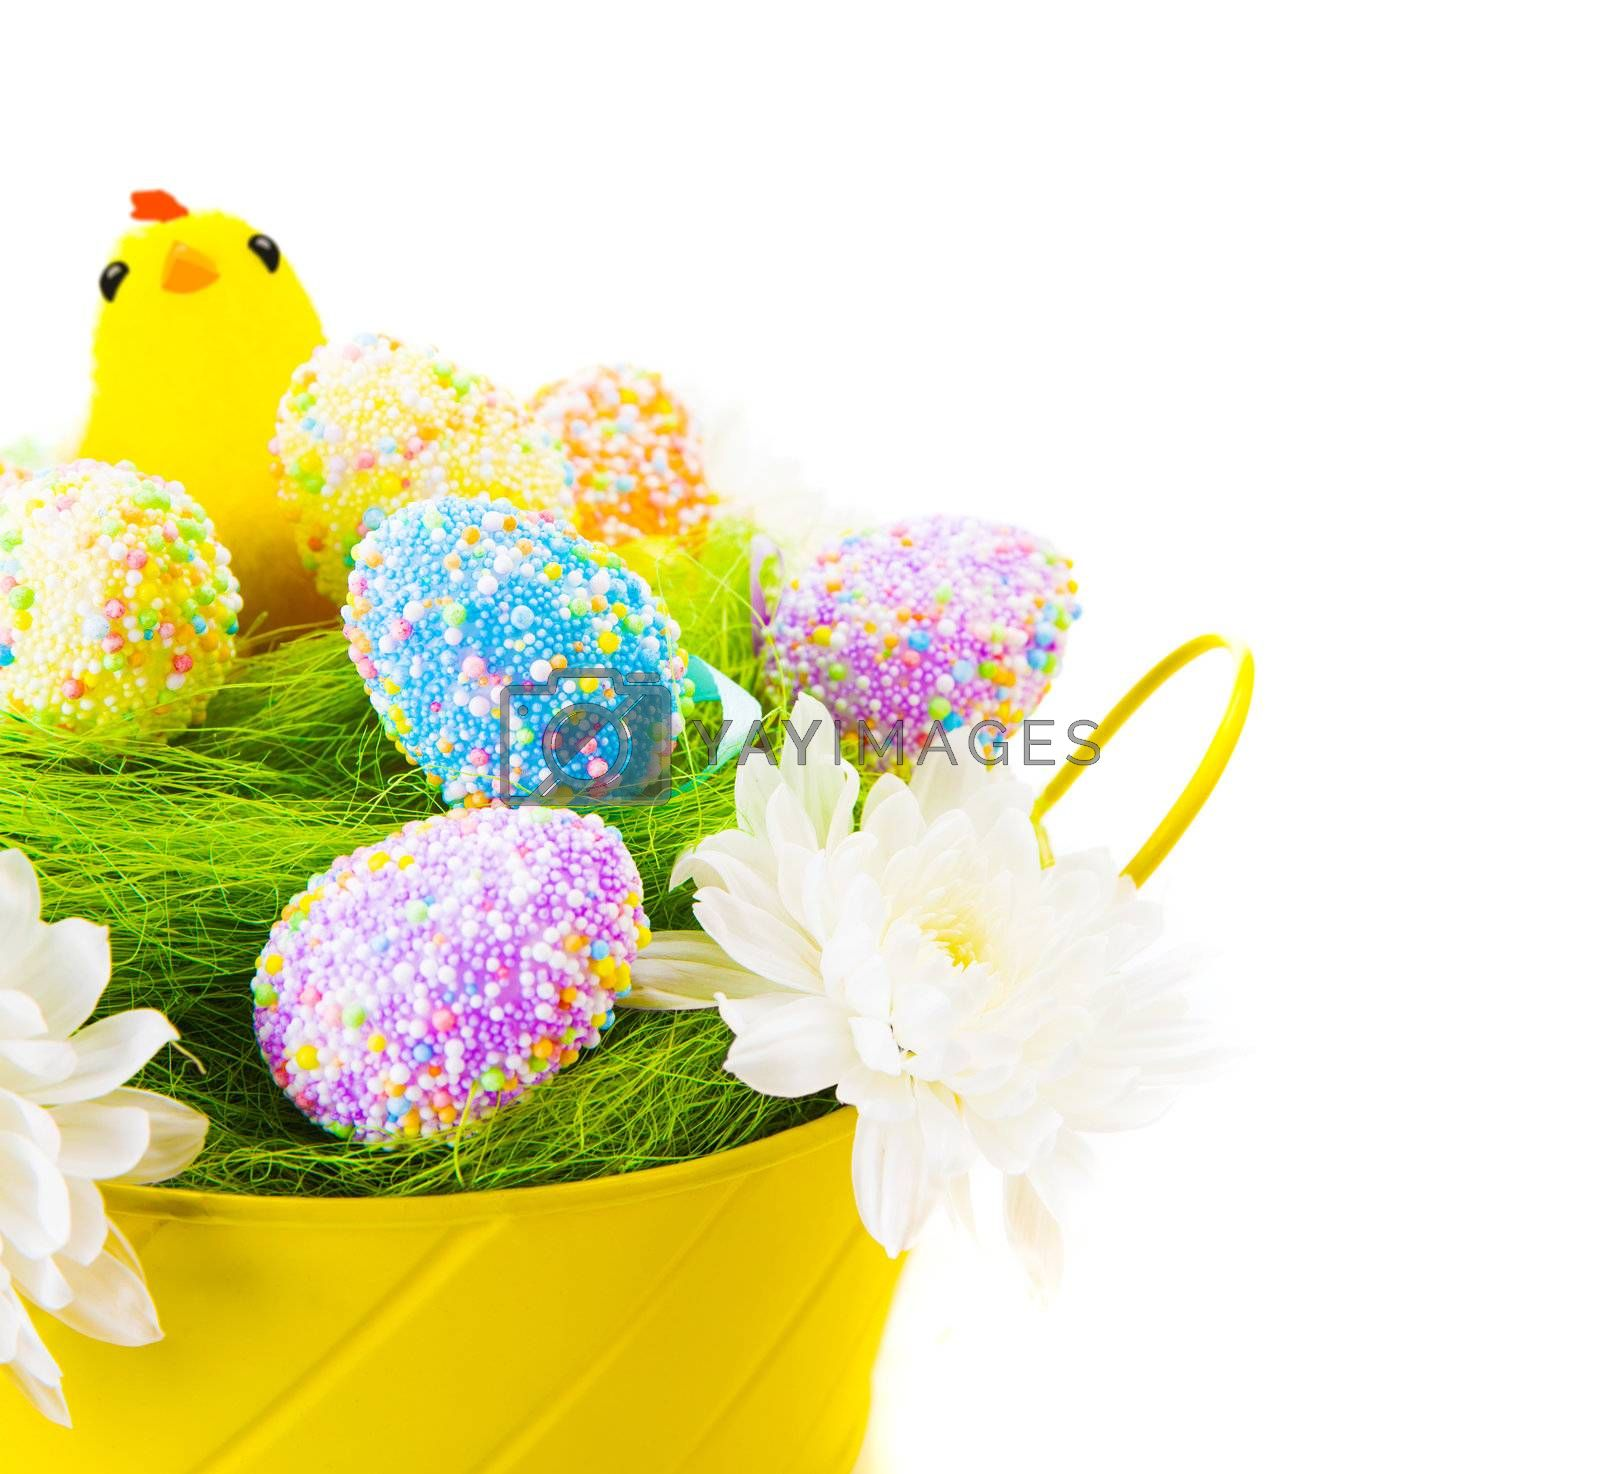 Beautiful colorful Easter eggs decorated with chicken toy isolated on white background, traditional christian eastertime symbol